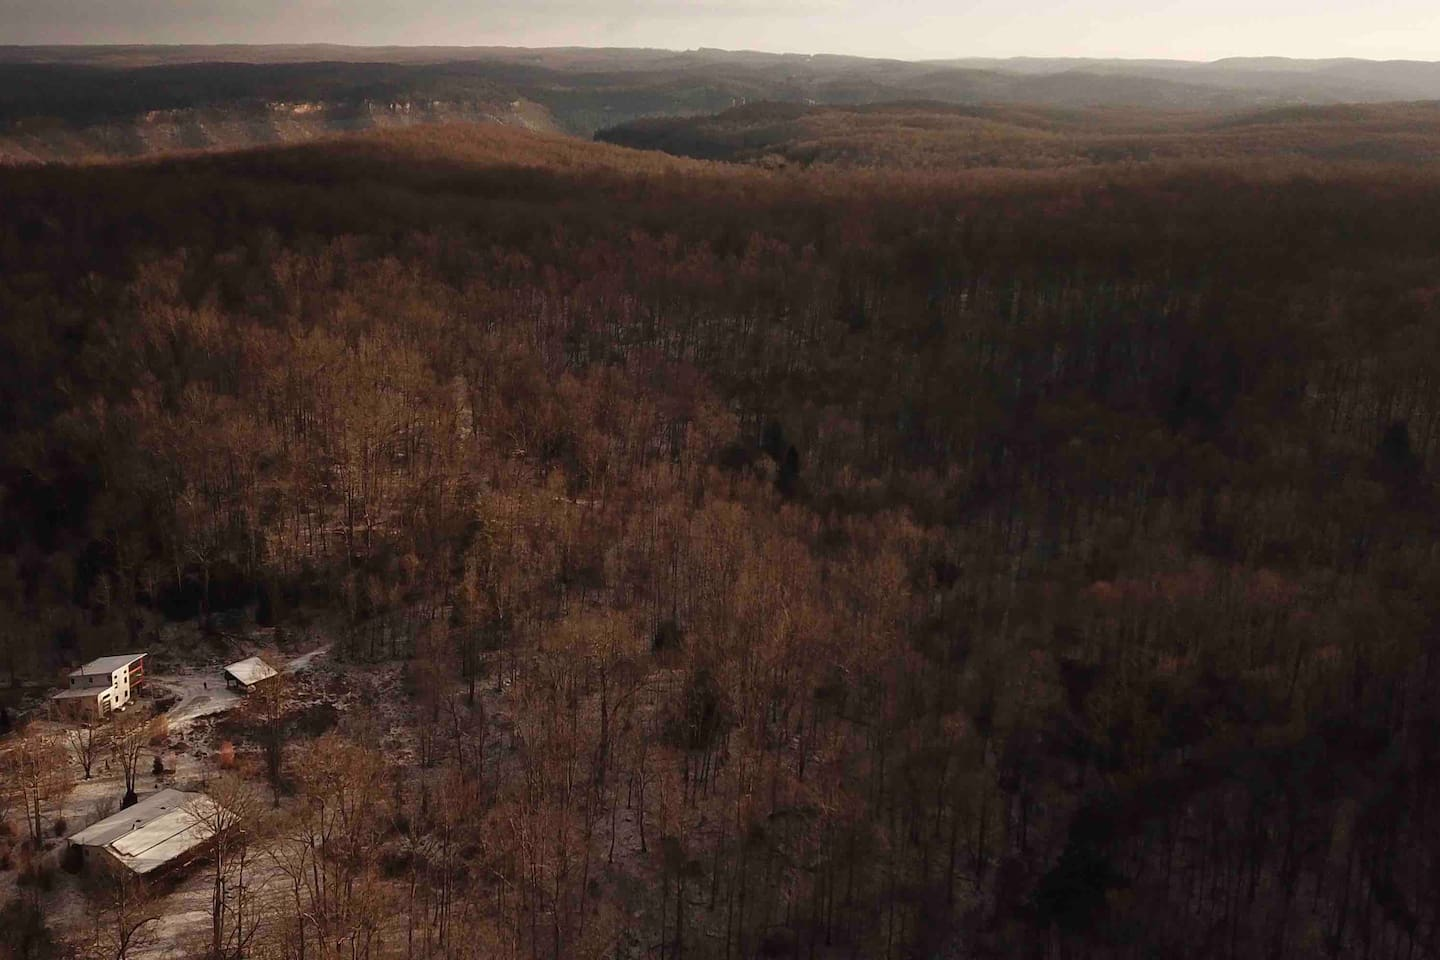 Late fall and winter are great times to see the shape of the land in the New River Gorge.